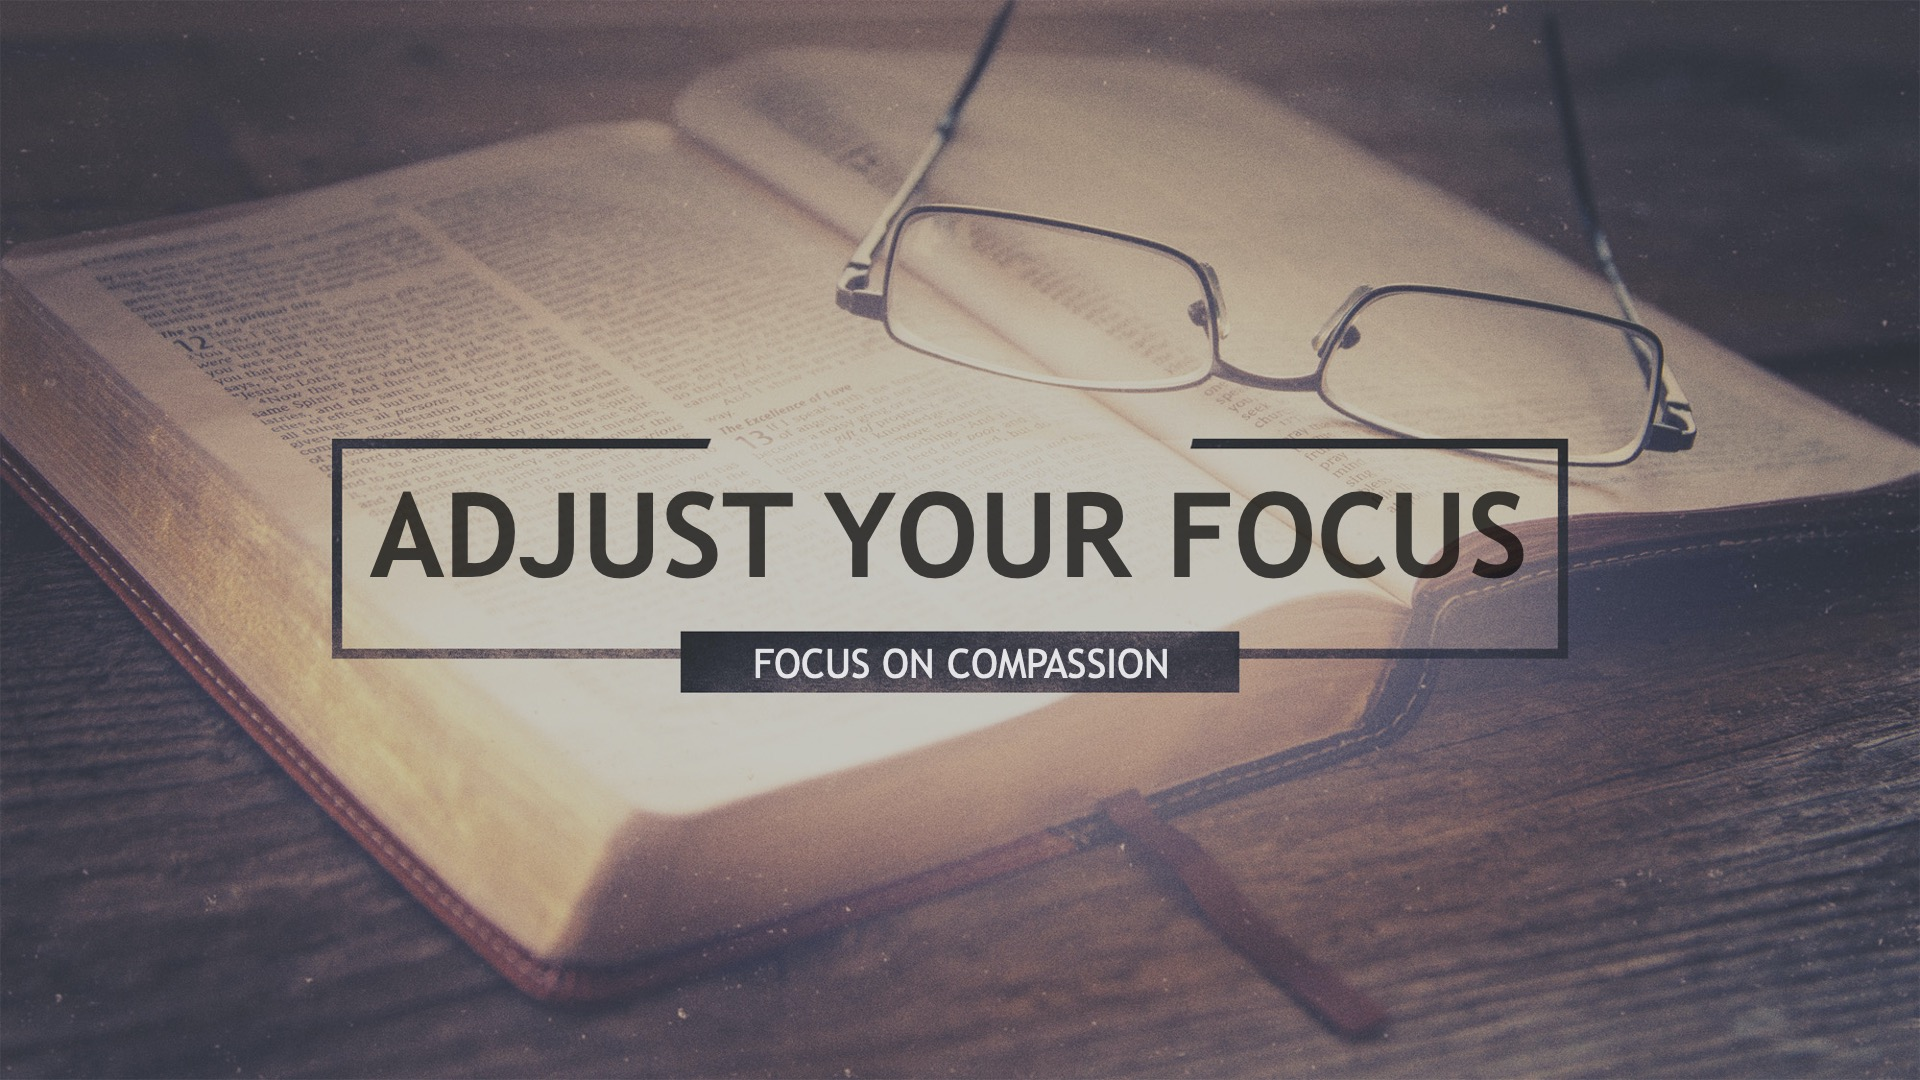 Adjust Your Focus Focus on Compassion